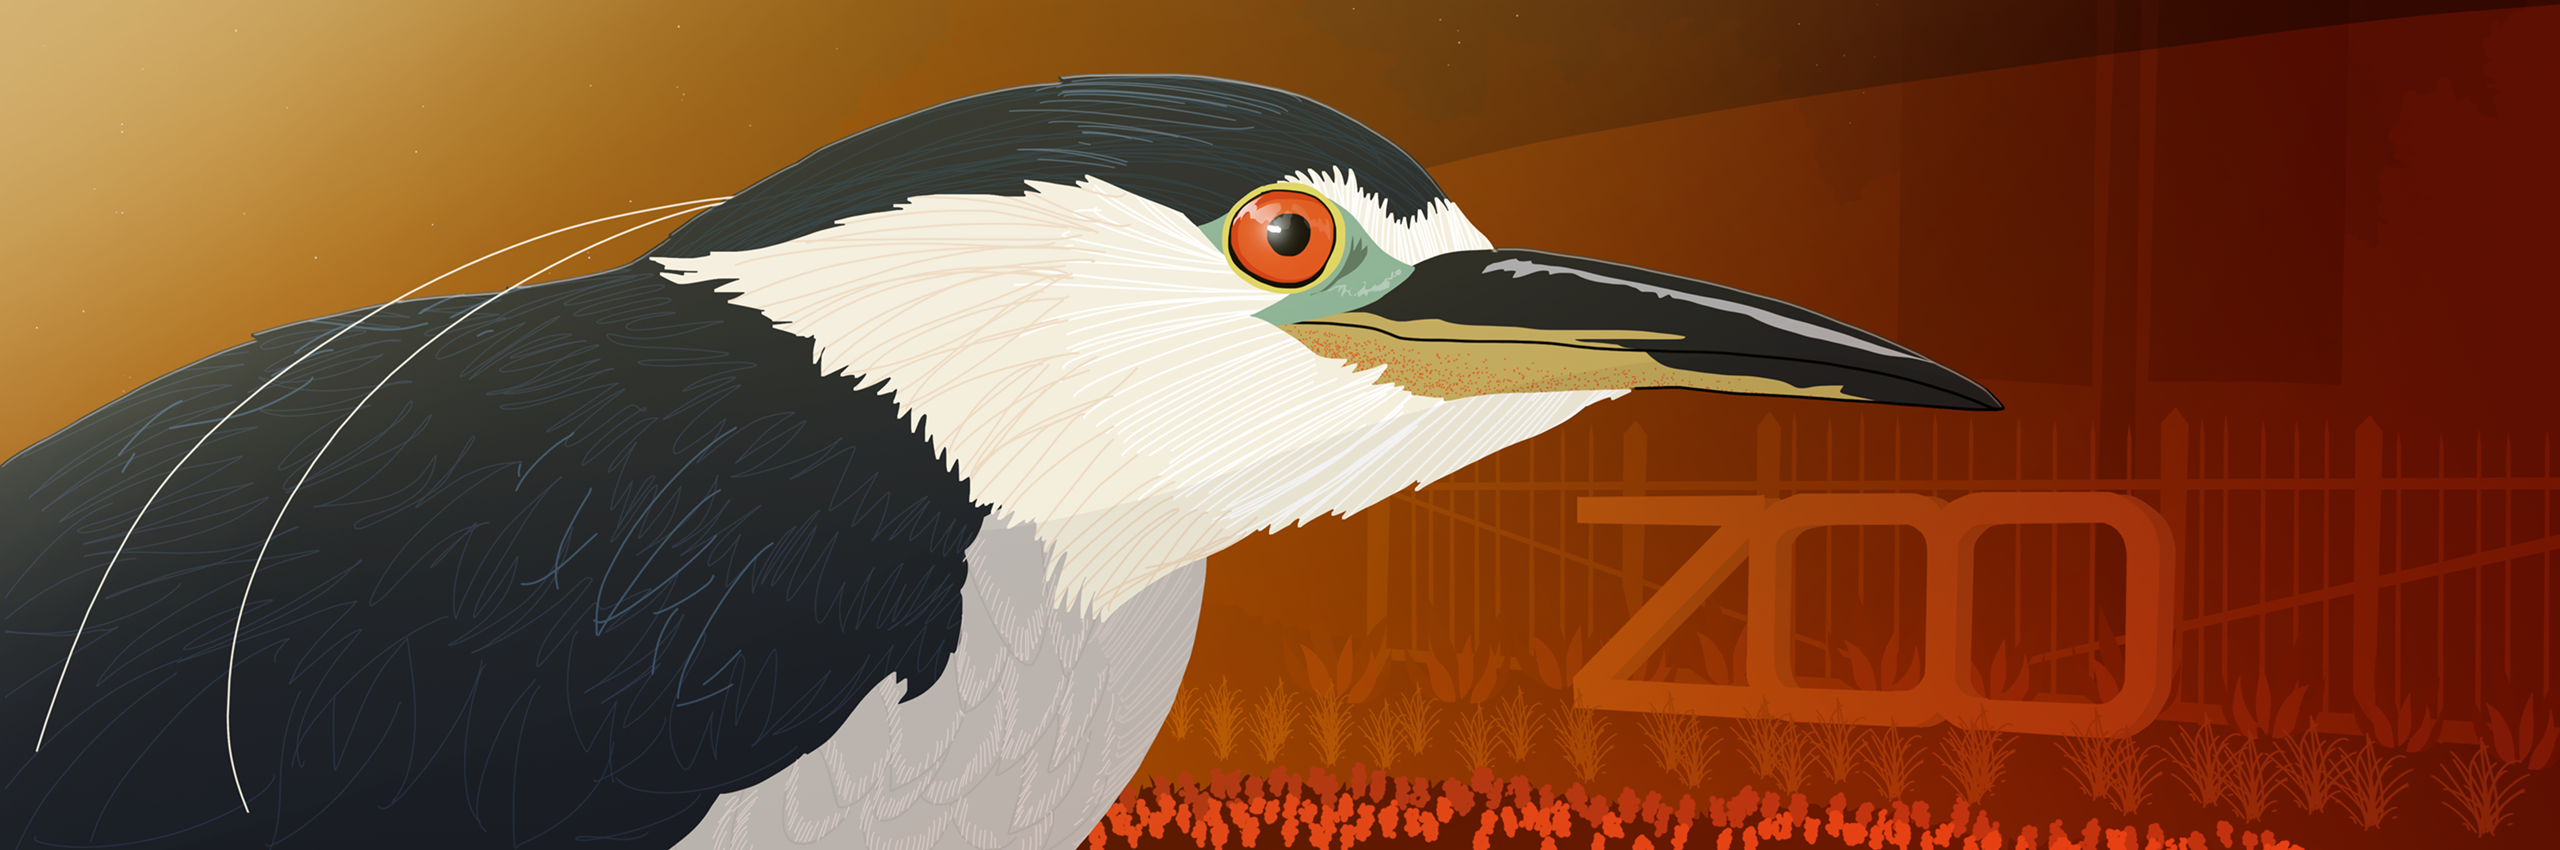 illustration of a black-crowned heron